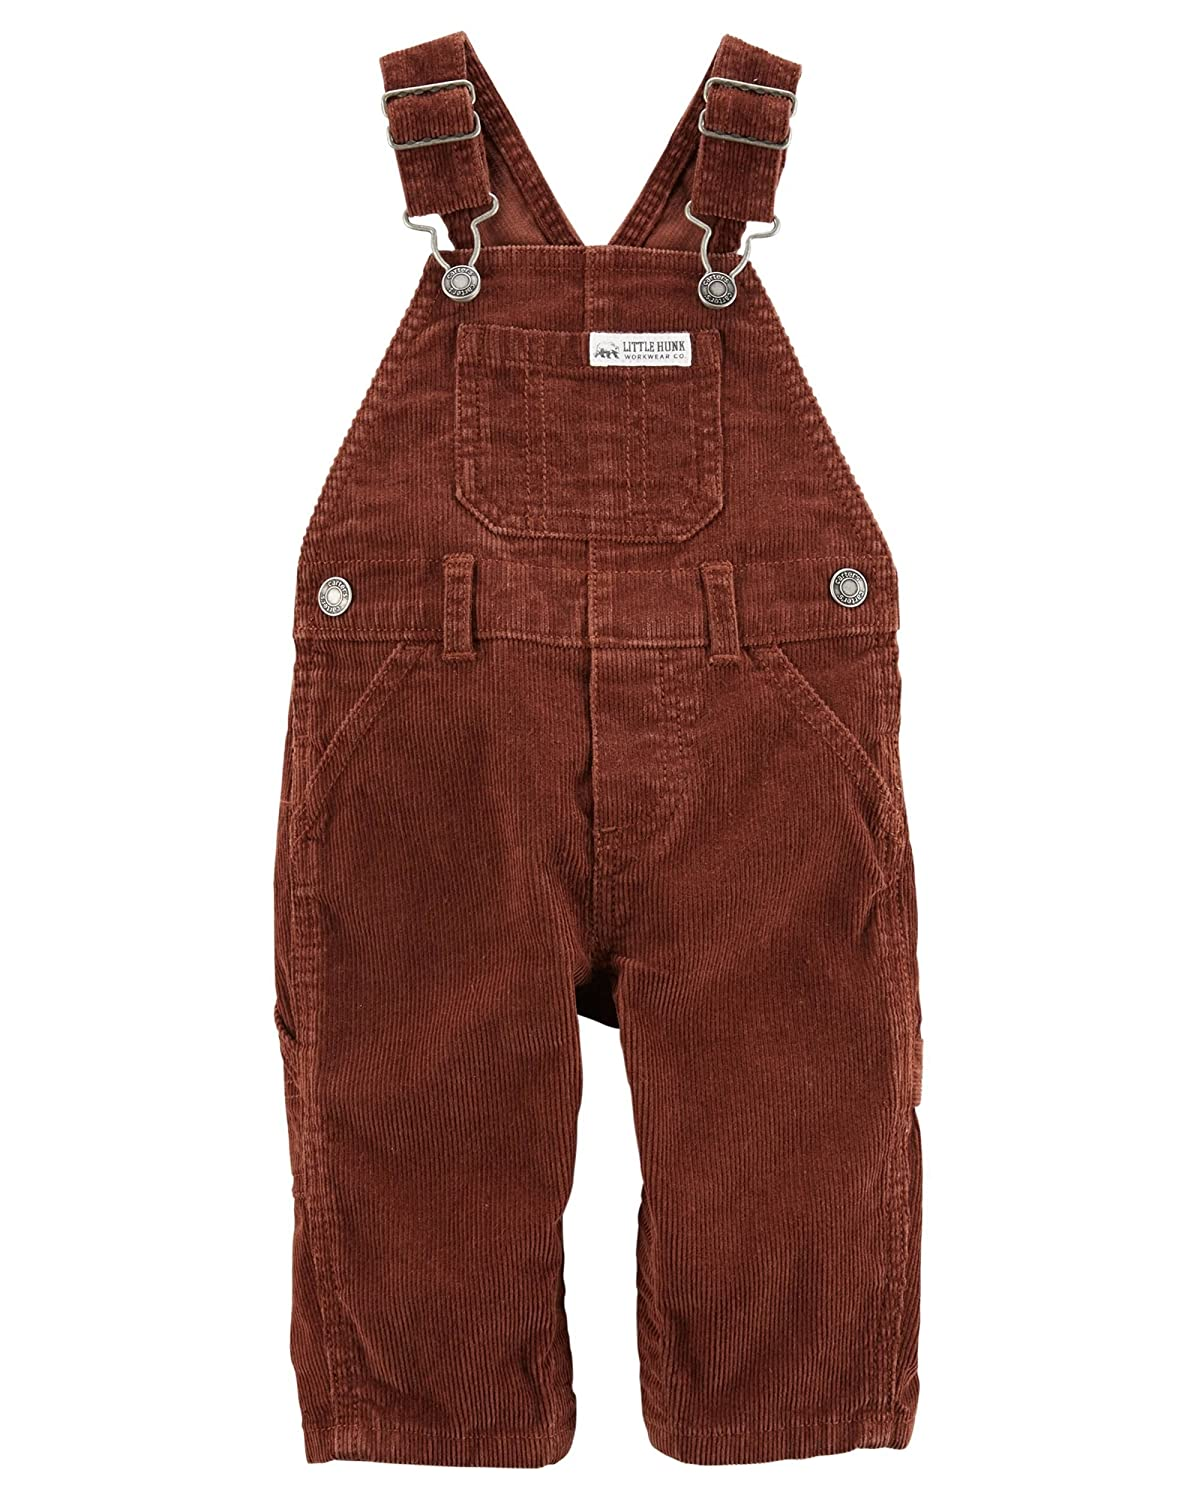 Carter's Baby Boys' Rust Corduroy Overalls - Little Hunk- 3 Months Carter's